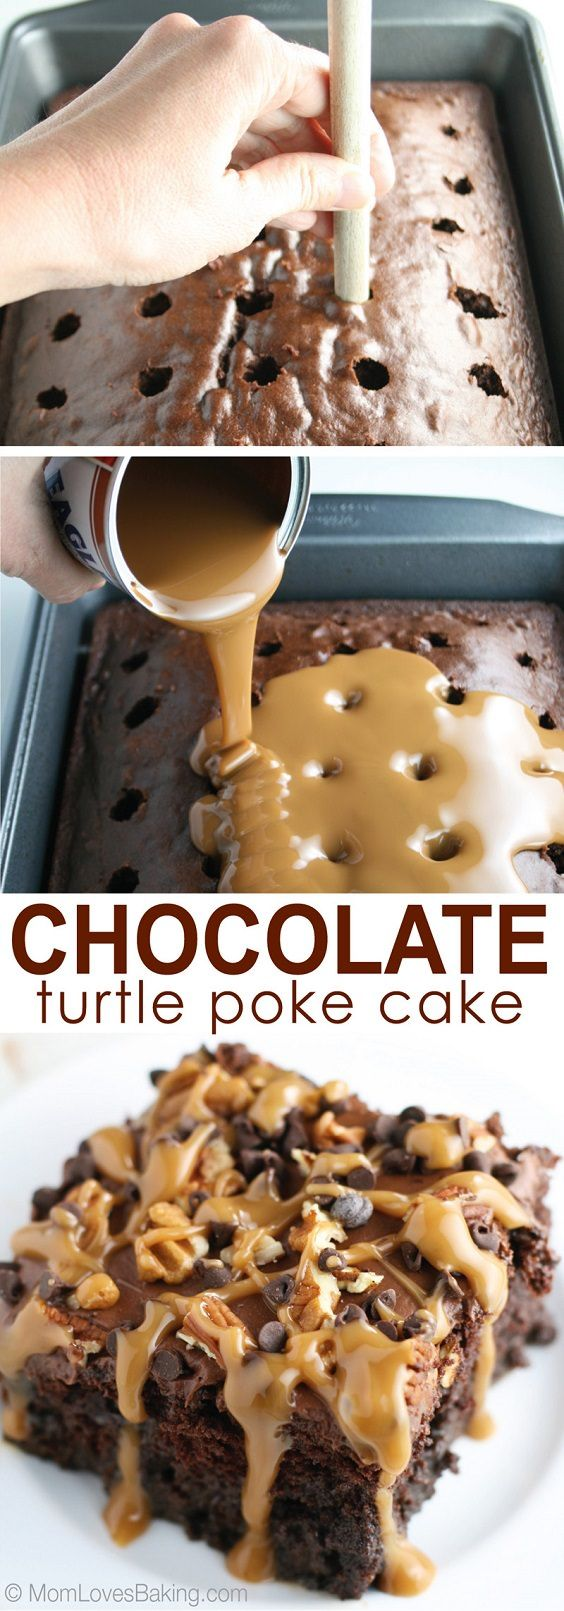 Chocolate Turtle Poke Cake #holidaydesserts